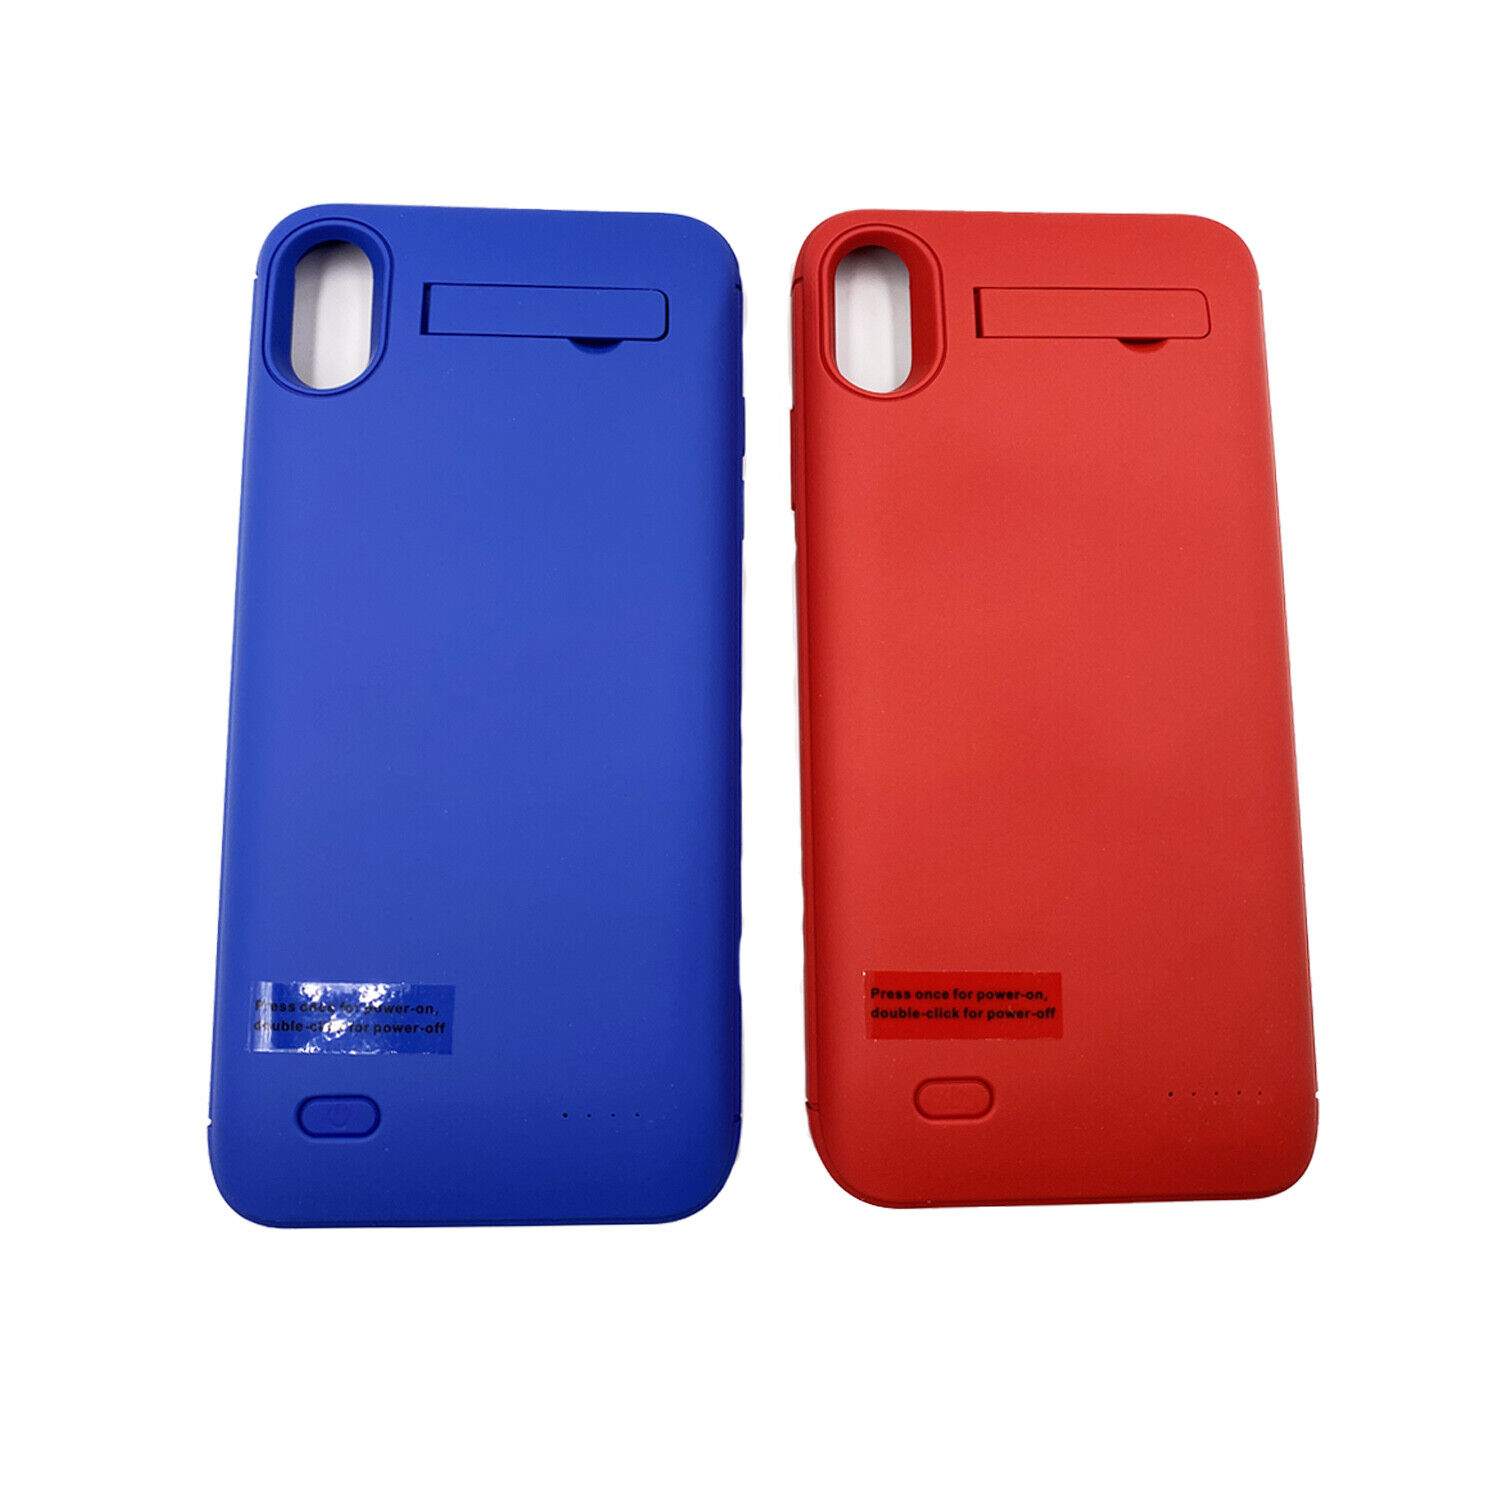 For iPhone X/XR/XS Max Battery Charging Case External Power Bank Backup Charger Cases, Covers & Skins